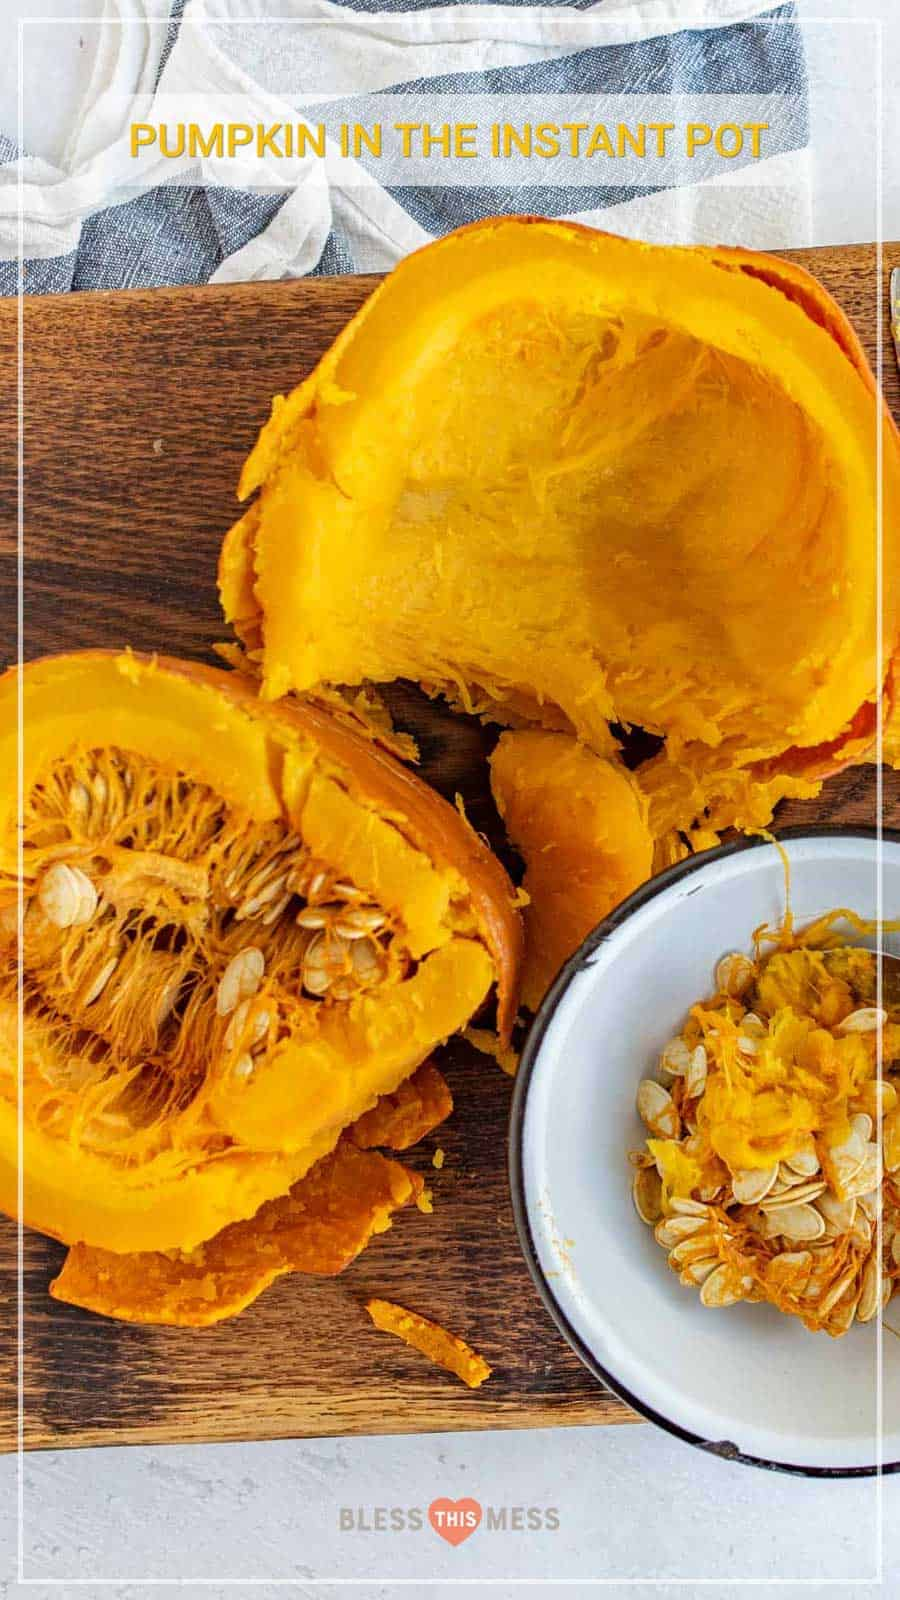 Learn how to cook pumpkin in the Instant Pot with this simple guide, so you can enjoy all the pumpkin soups, pies, and other fall recipes you and your family love! It's a cinch (and so fast) to cook pumpkin in the Instant Pot -- easy enough that you'll find yourself ditching the canned store-bought kind! #pumpkin #pumpkinpuree #pumpkinrecipes #pumpkininstantpot #instantpot #instantpotrecipes